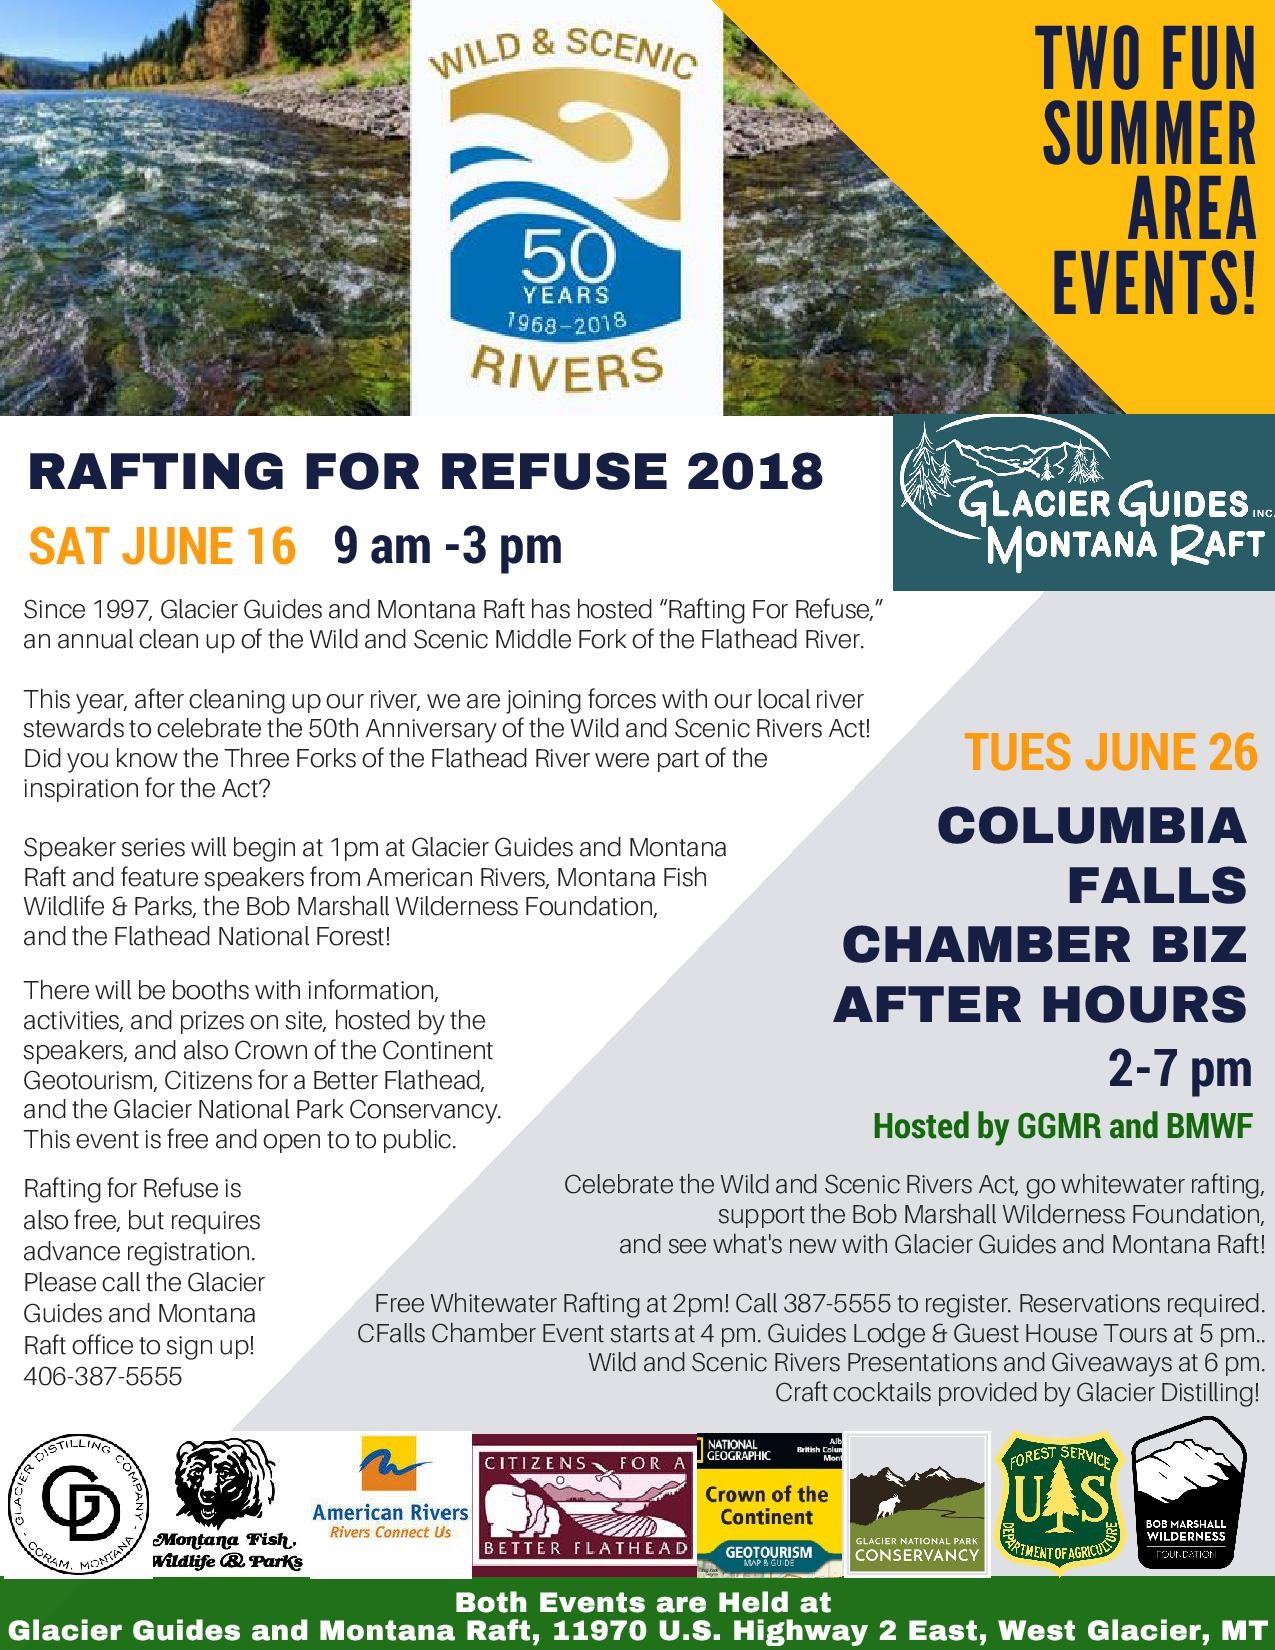 Glacier Guides Montana Raft Two Summer Events Flyer